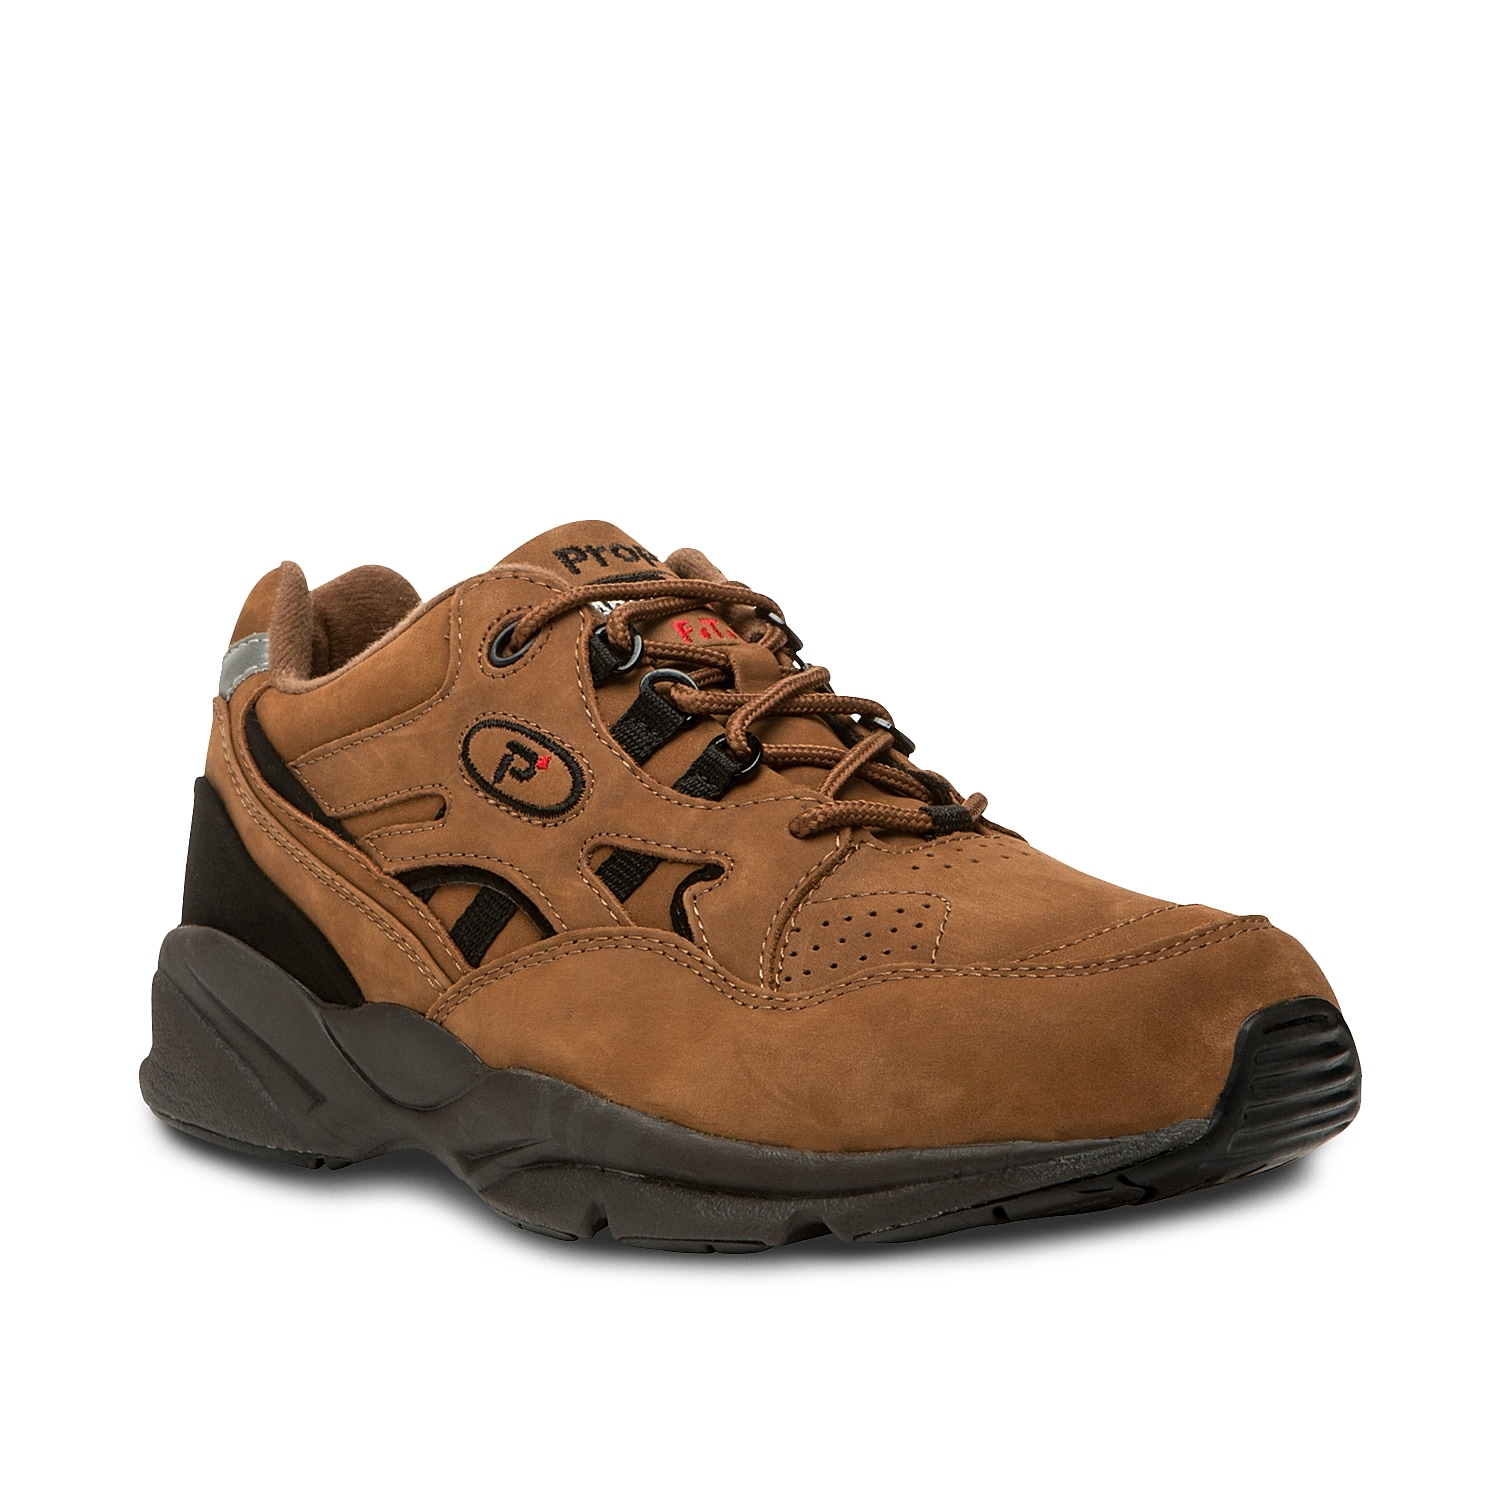 The Stability Walker from Propet is a classic lace-up walking shoe with a slightly dressier look. The EVA midsole features a herring-bone tread rubber outsole for superior traction.